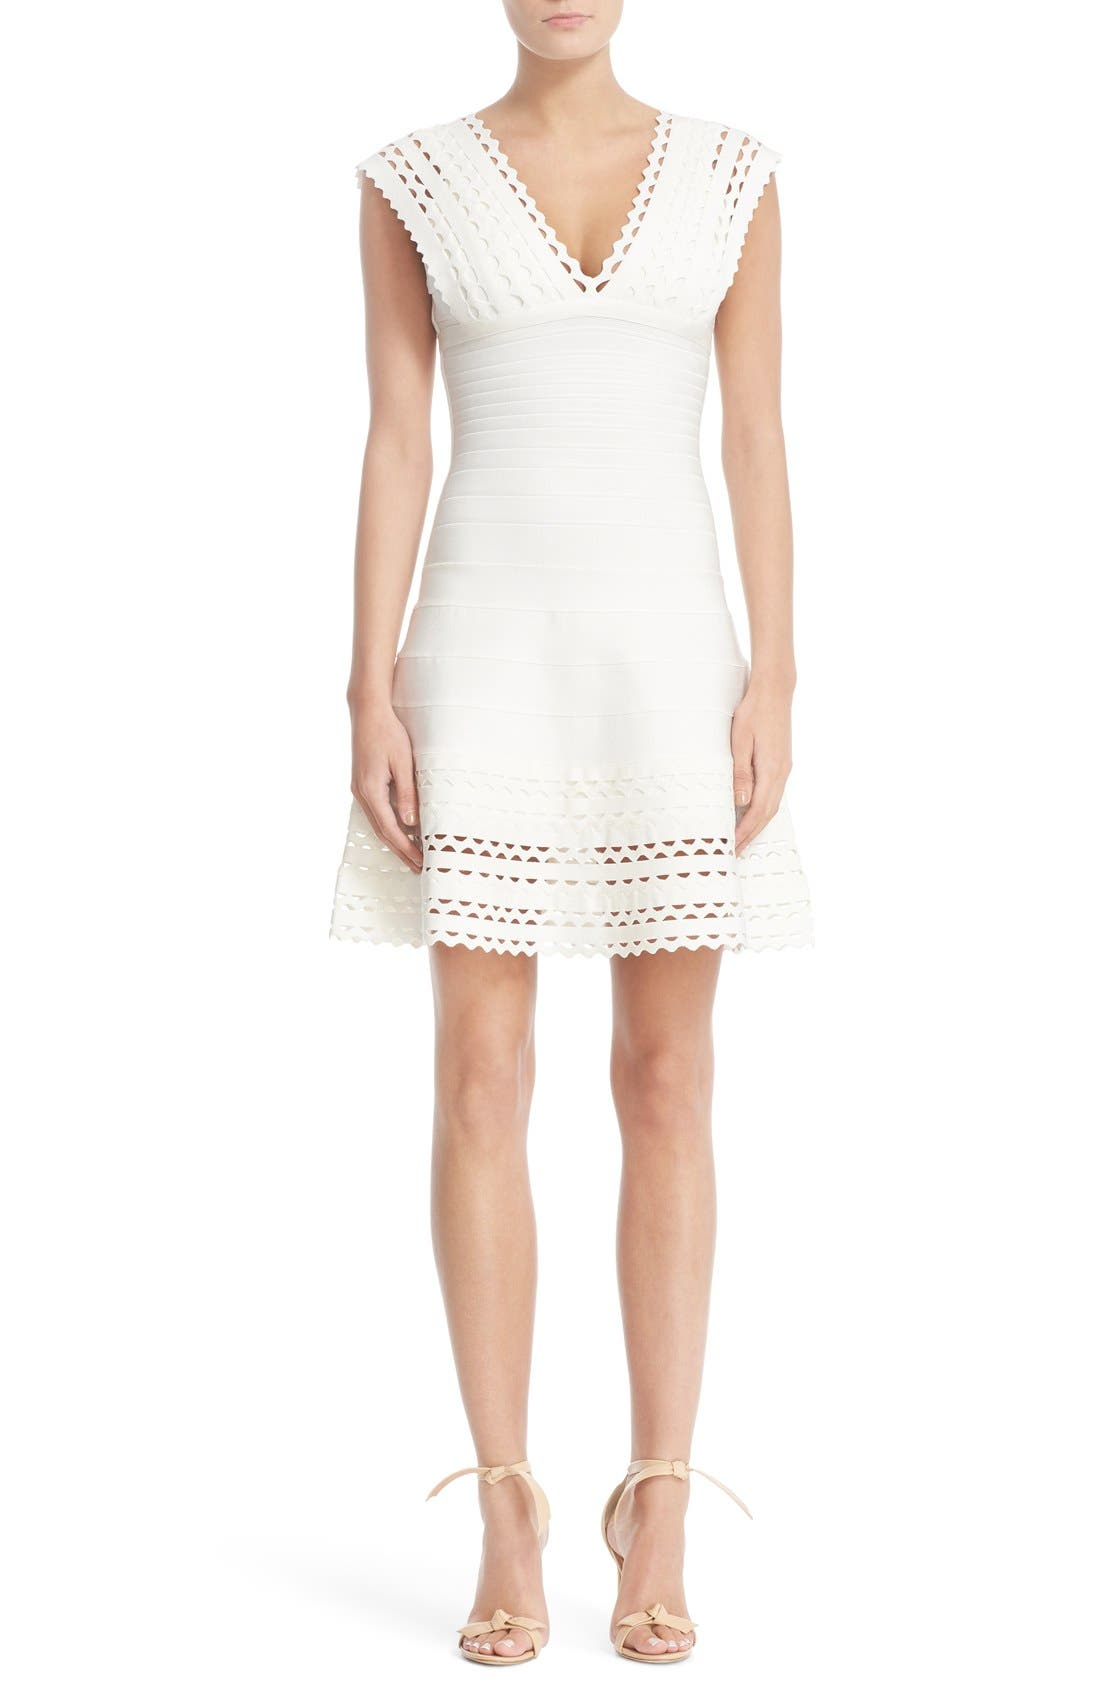 HERVE LEGER Lace Fit & Flare Bandage Dress